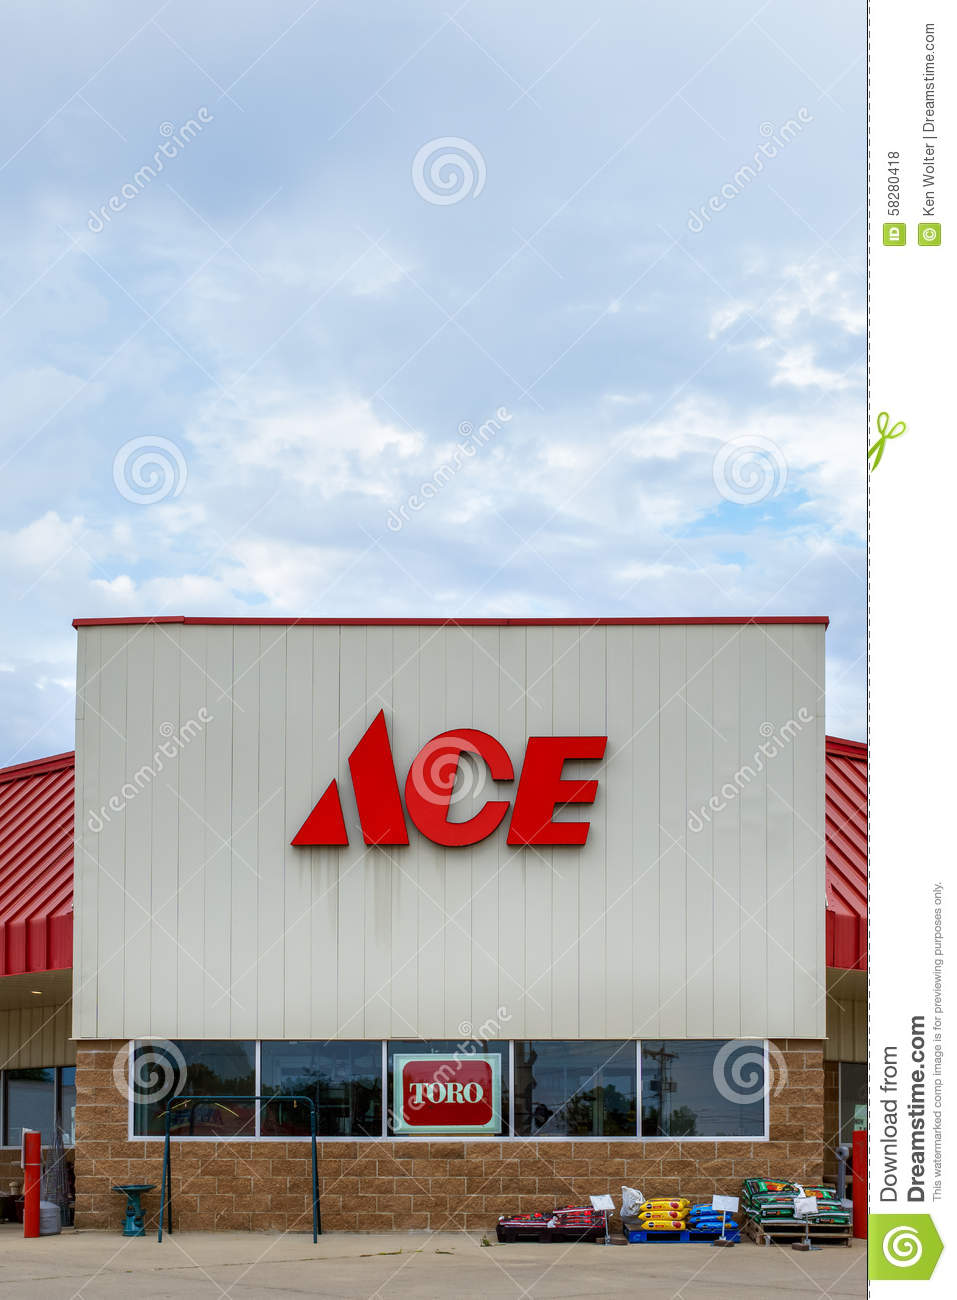 Ace hardware stock price / Best vacation package deals online